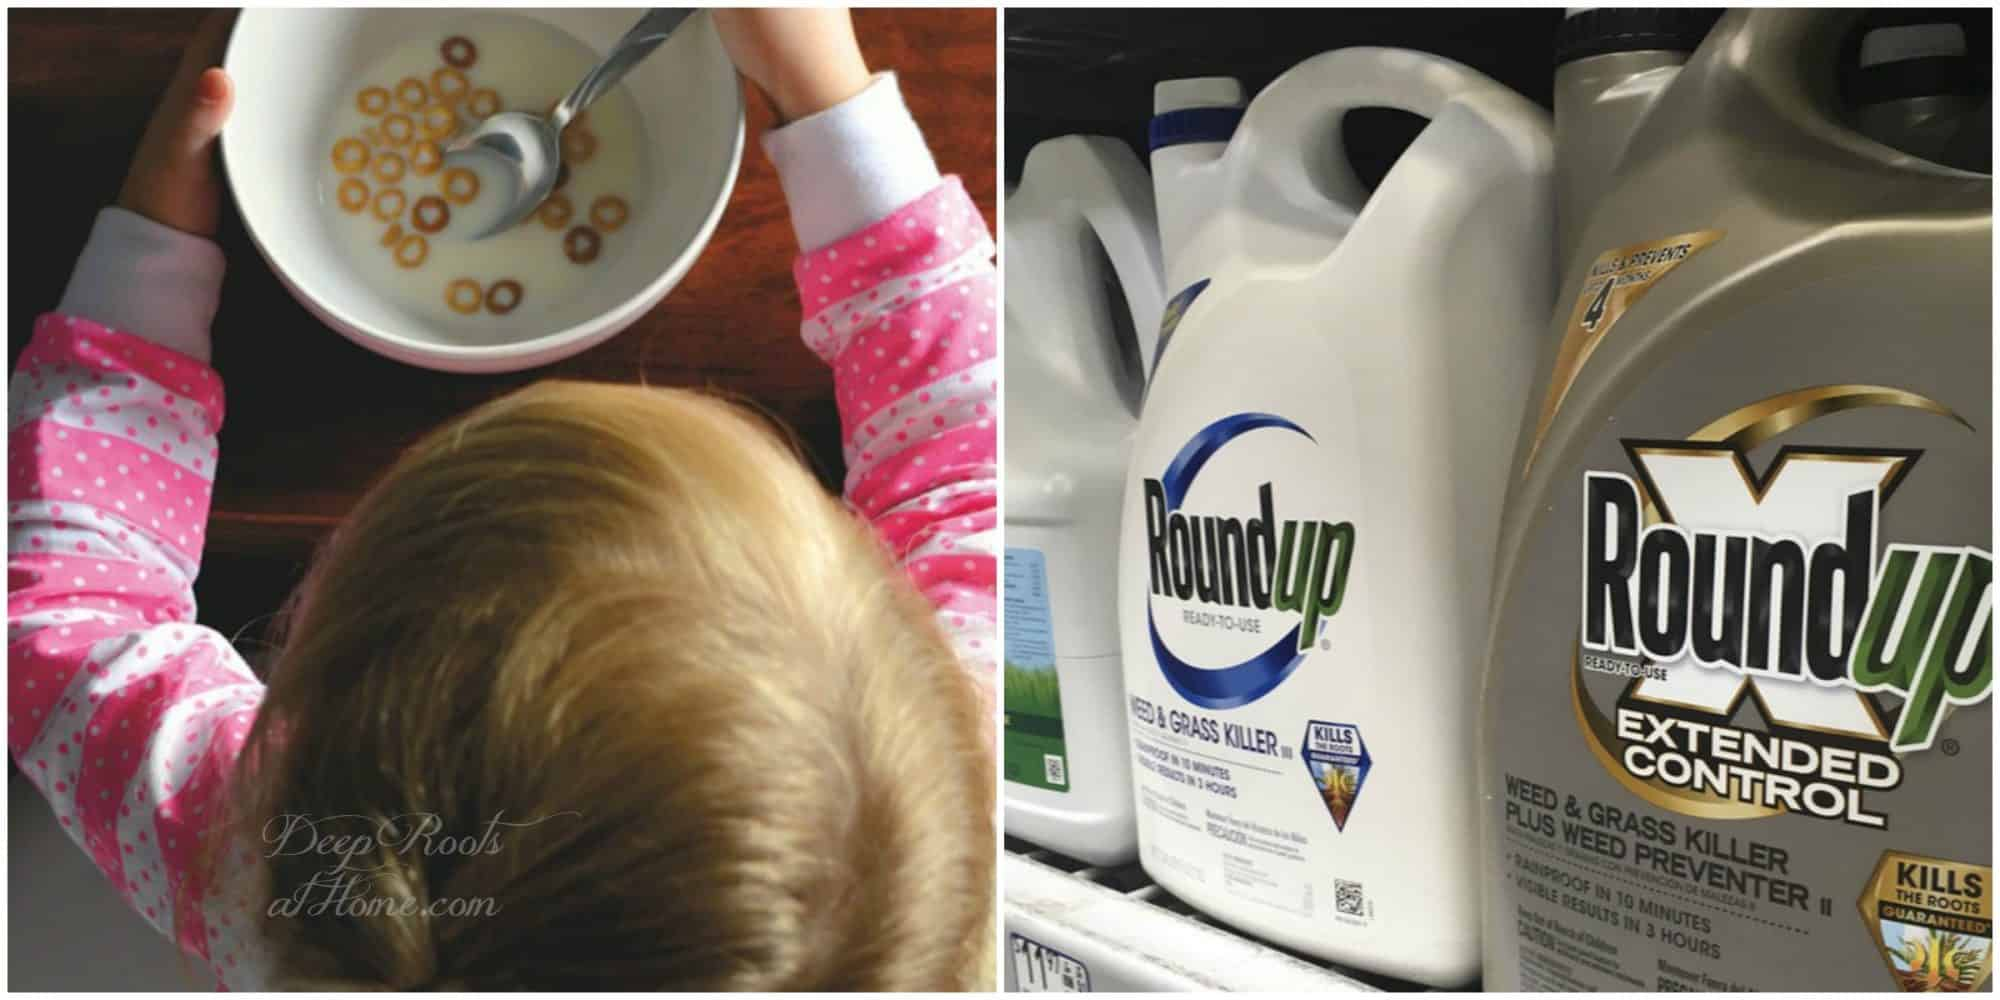 The Many Ways Roundup (Glyphosate) Can Kill You. chemicals in cereal and on lawns